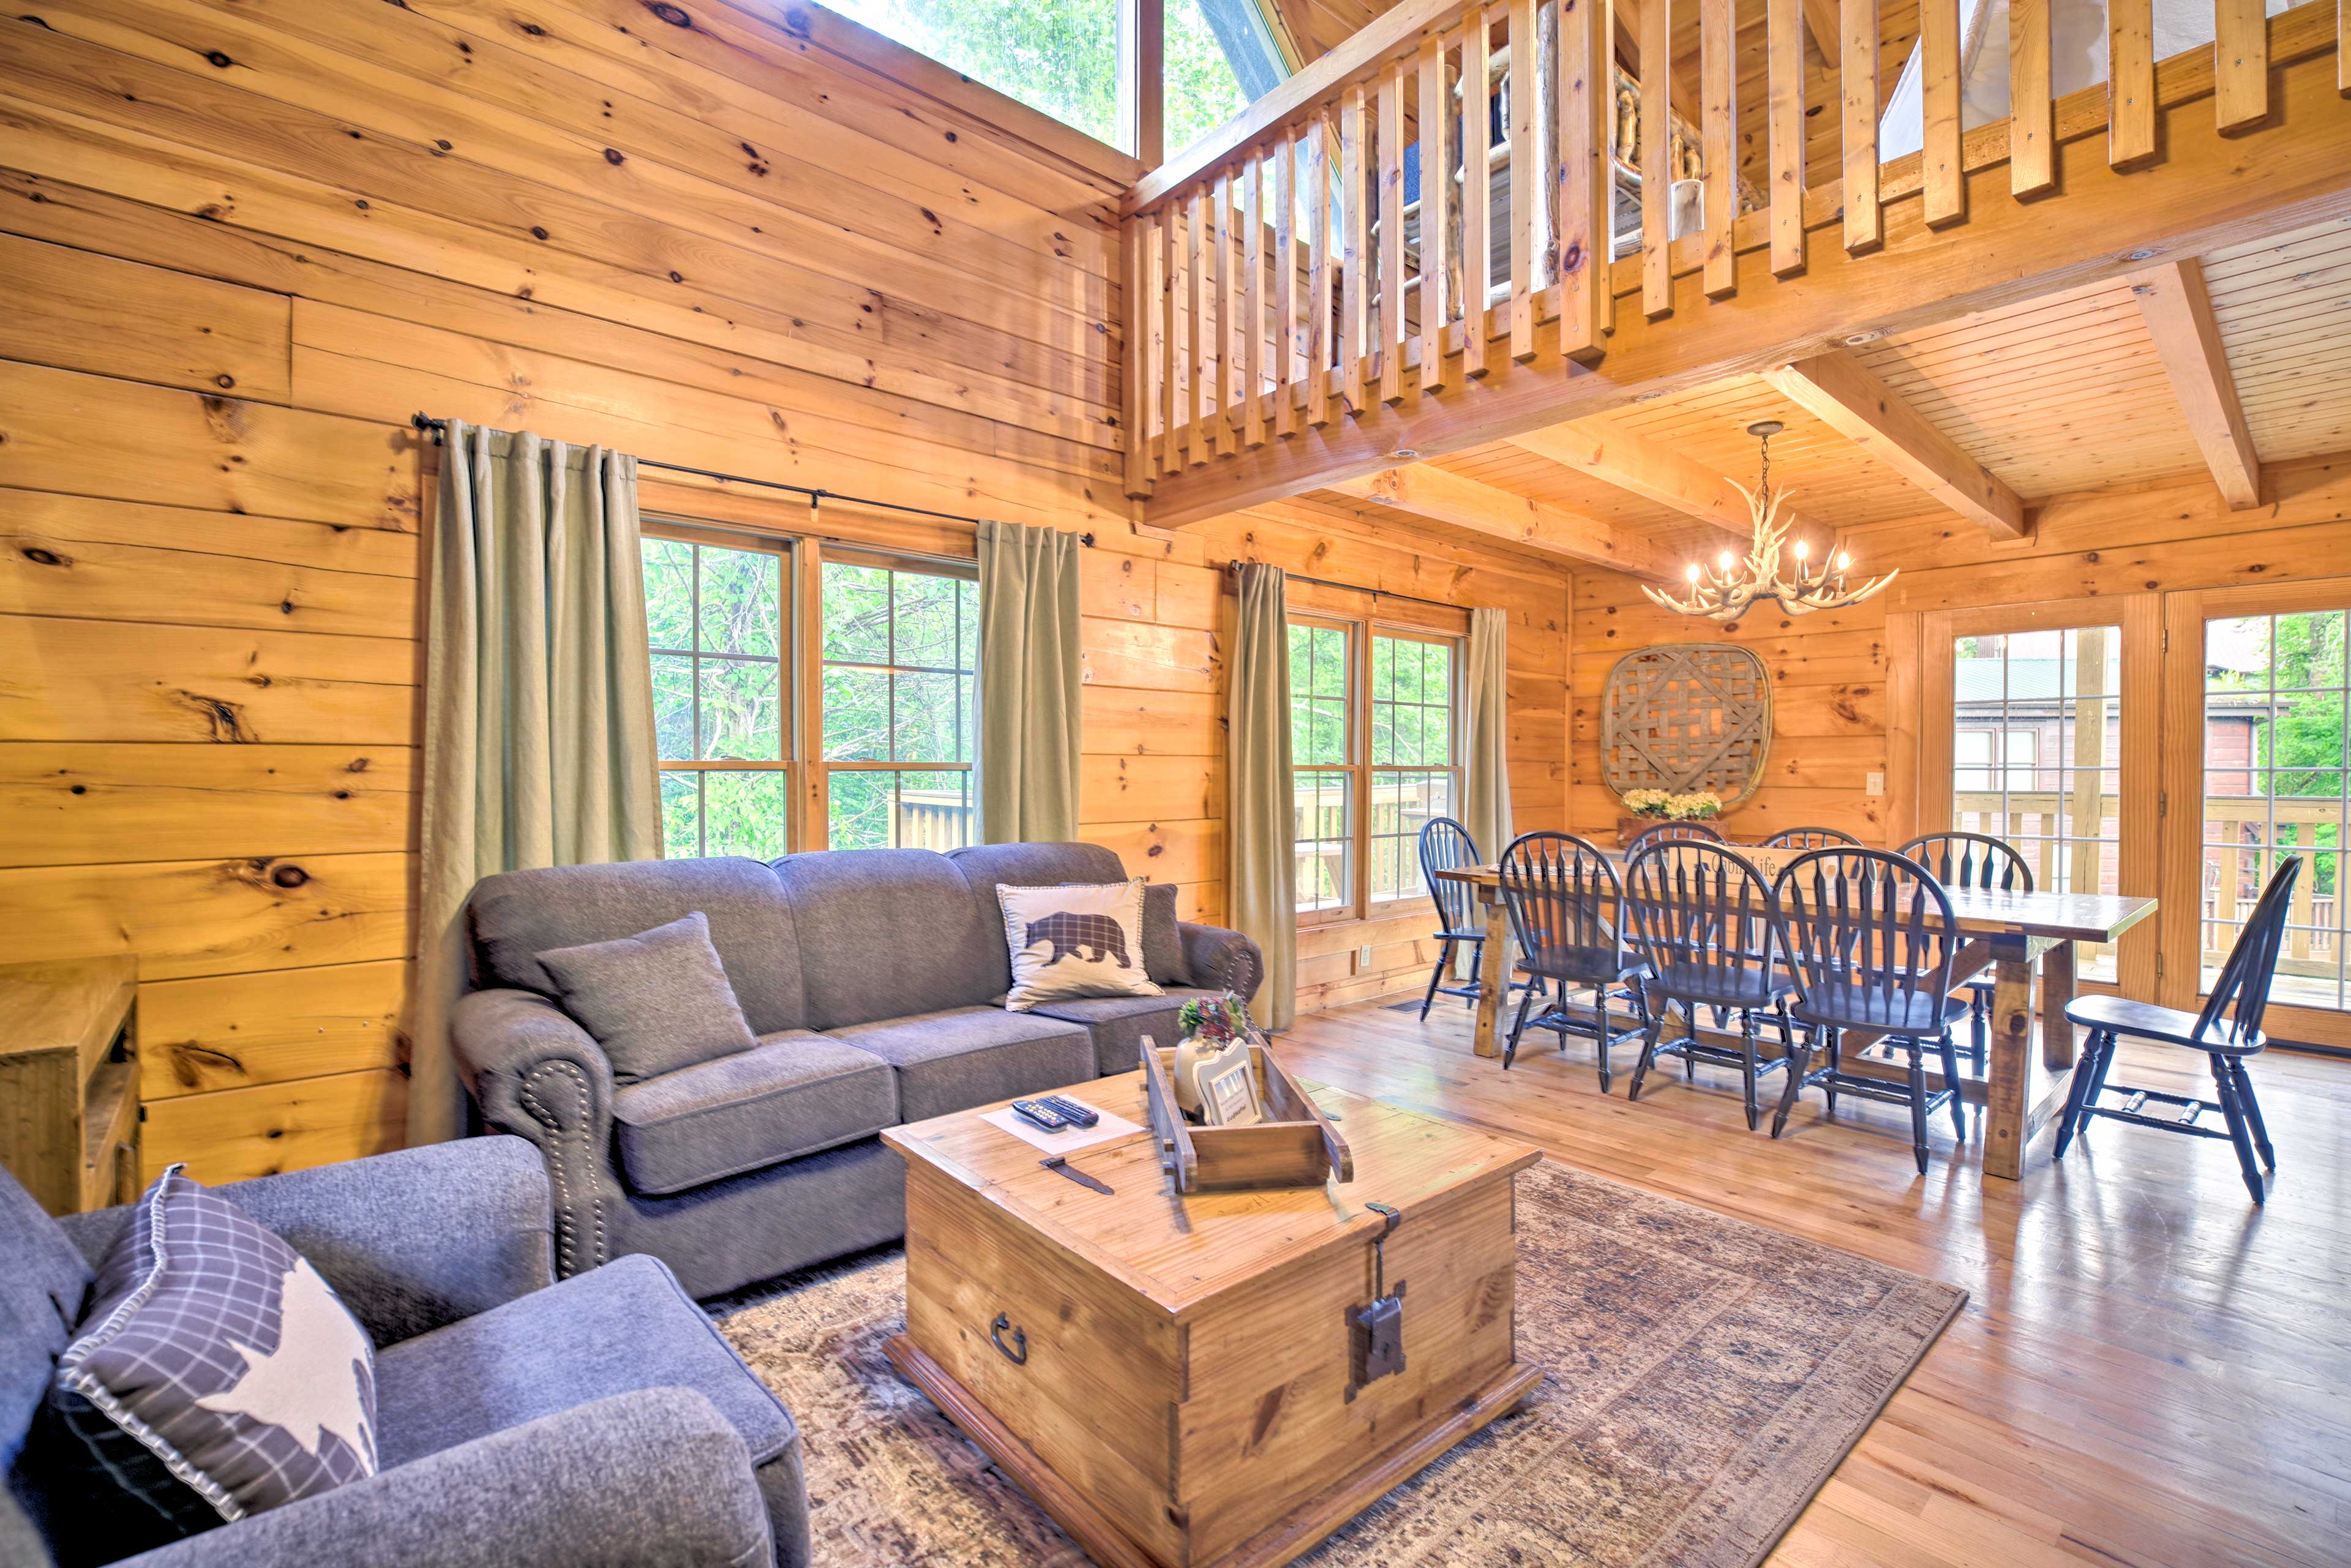 Knotty pine wood walls and vaulted ceilings complete the space.